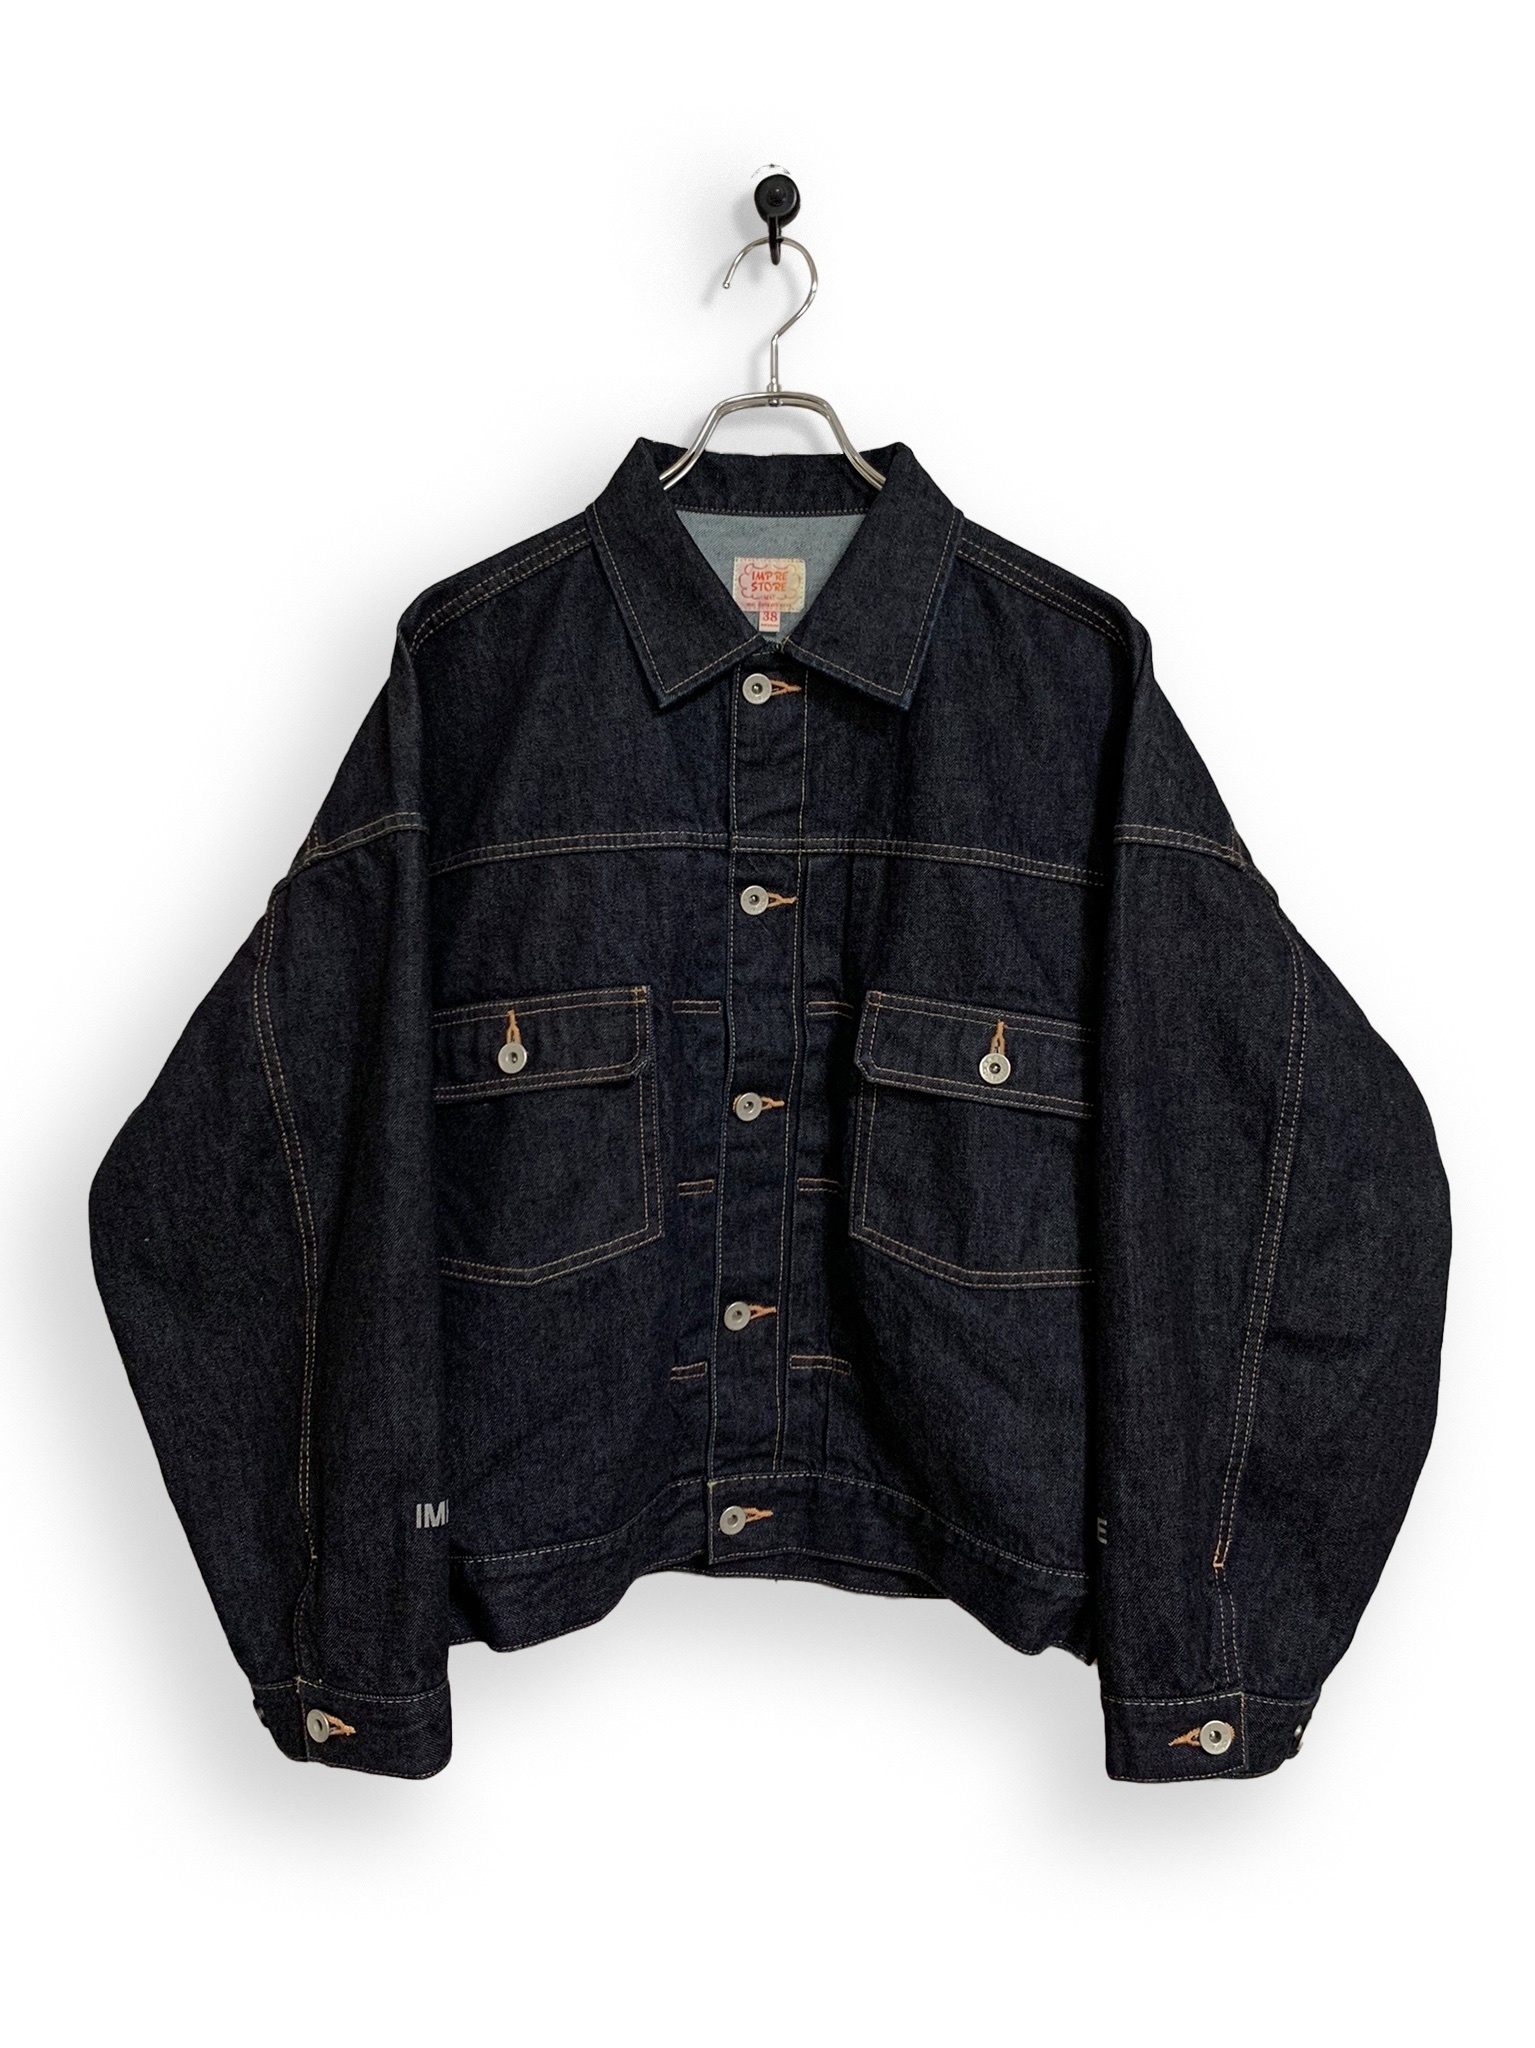 12.5oz Denim Jacket / one wash